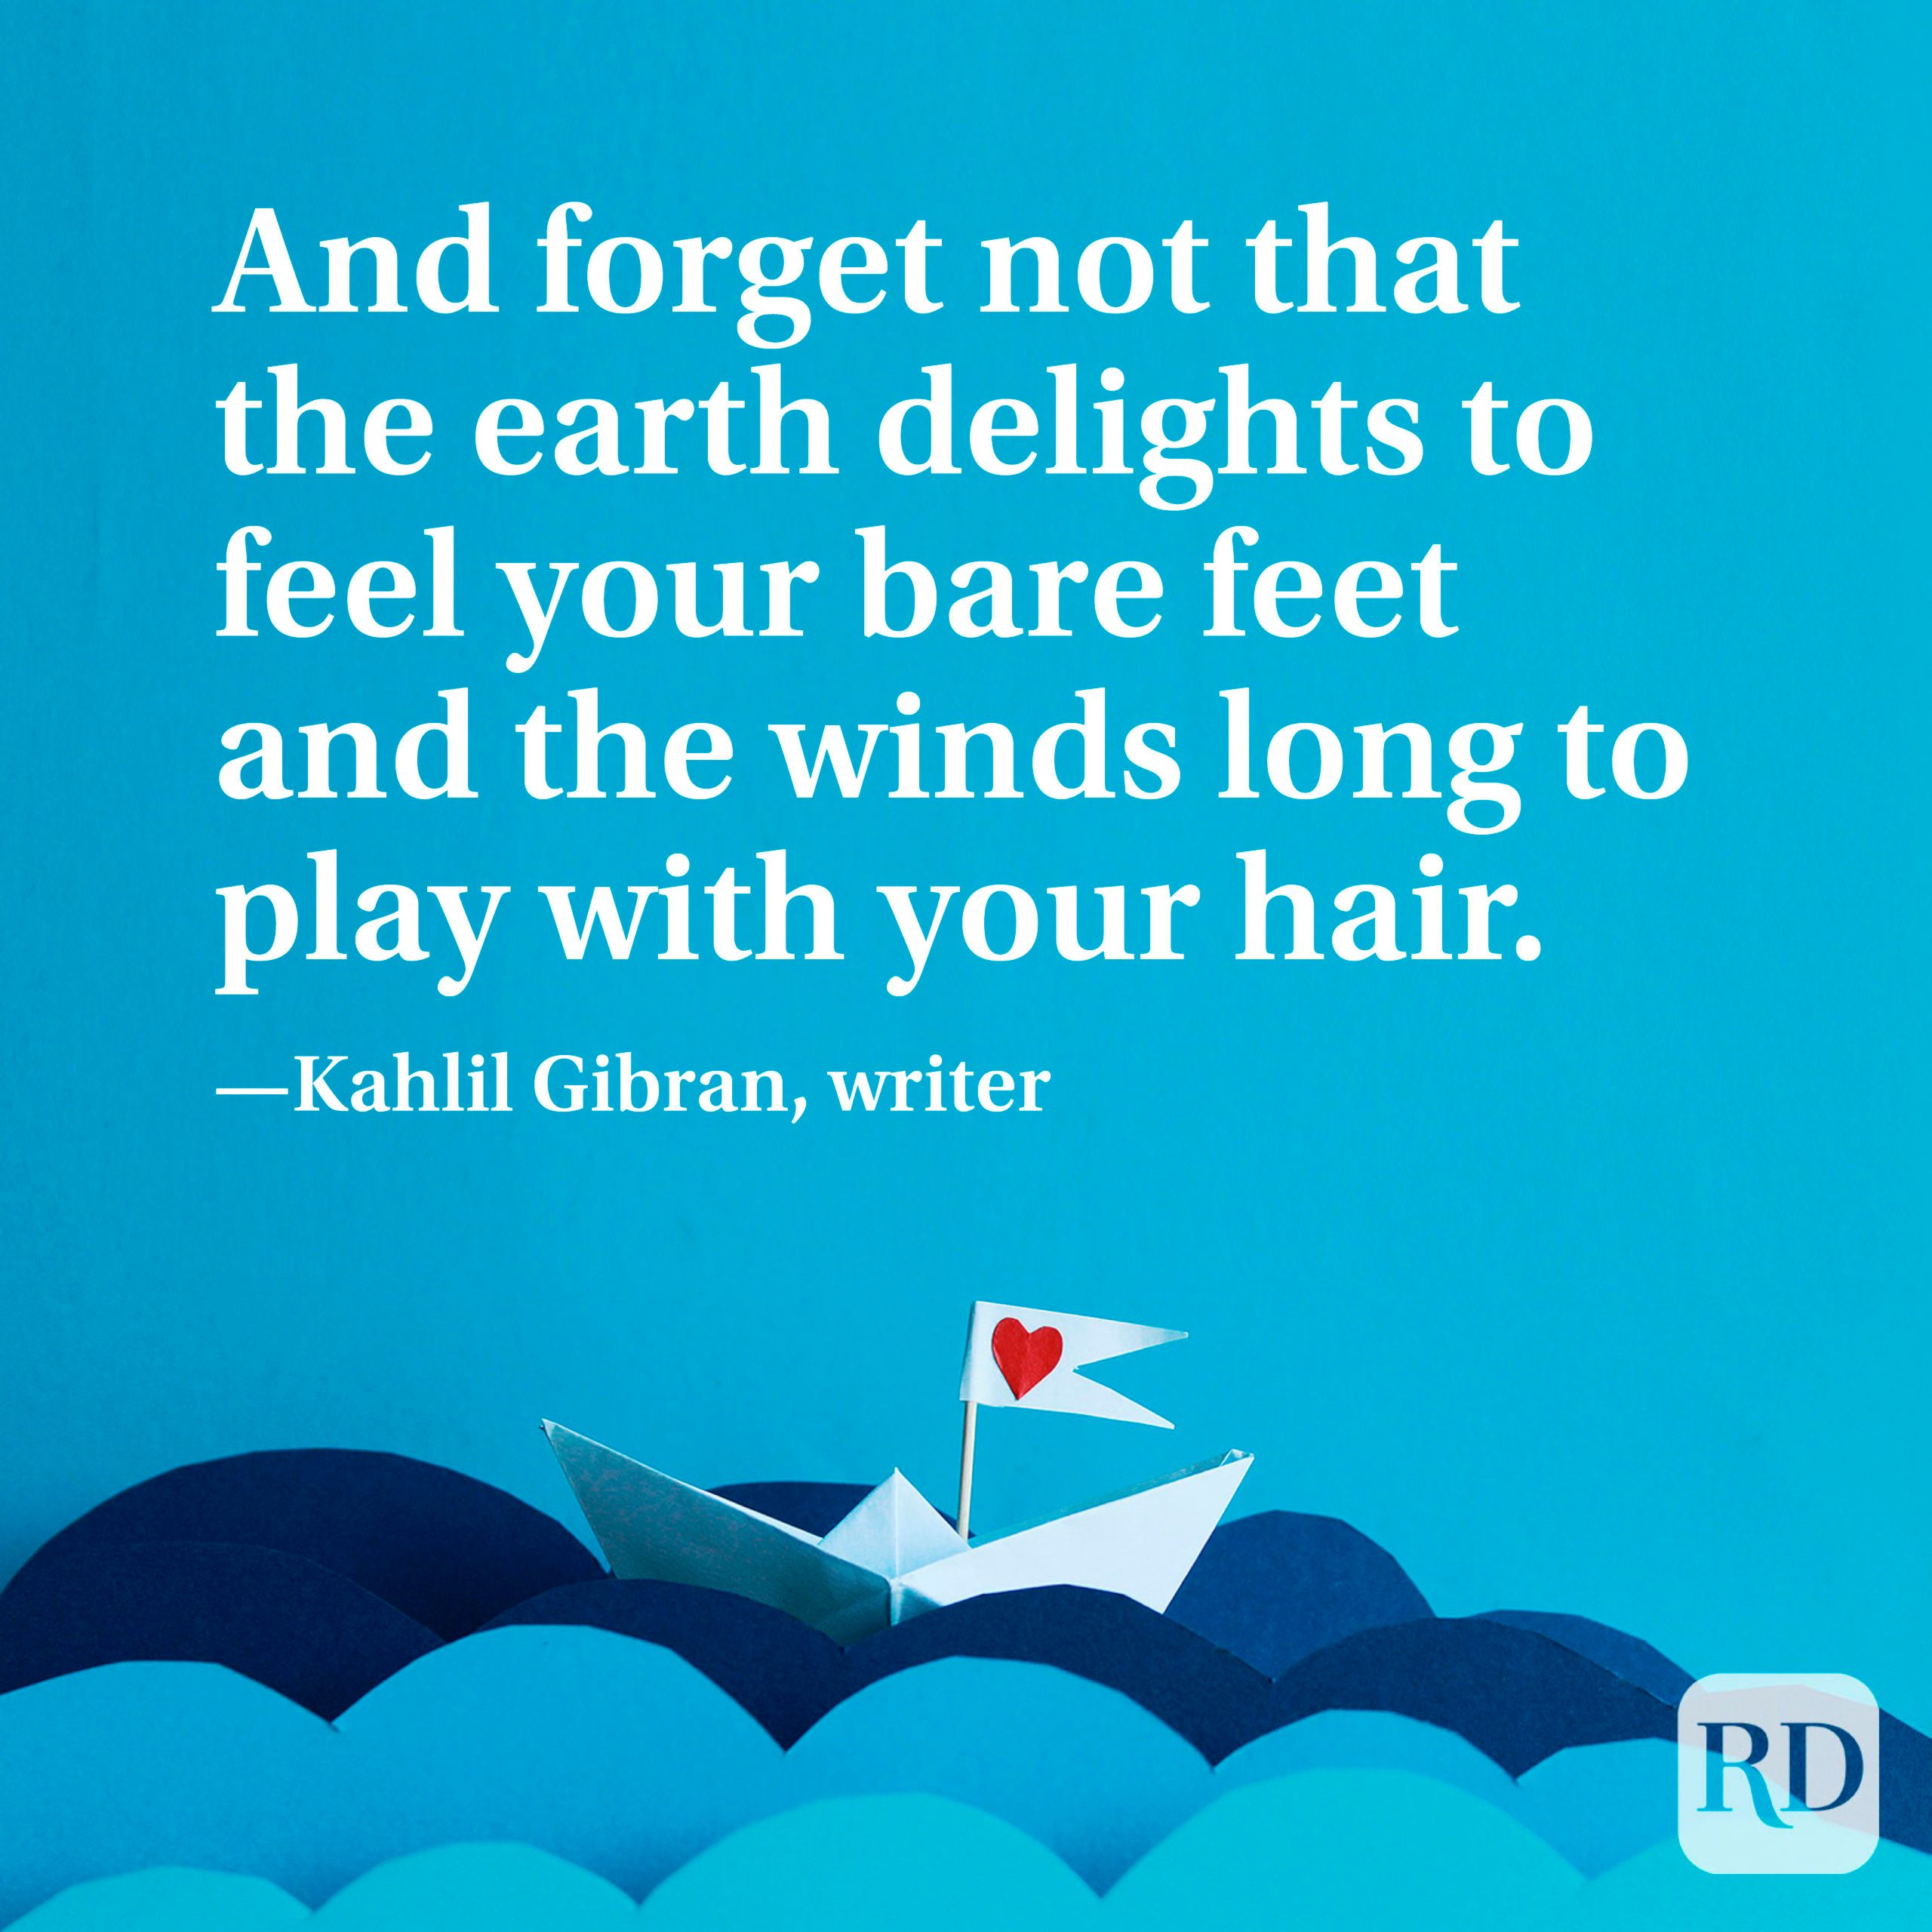 """""""And forget not that the earth delights to feel your bare feet and the winds long to play with your hair."""" —Kahlil Gibran, writer"""